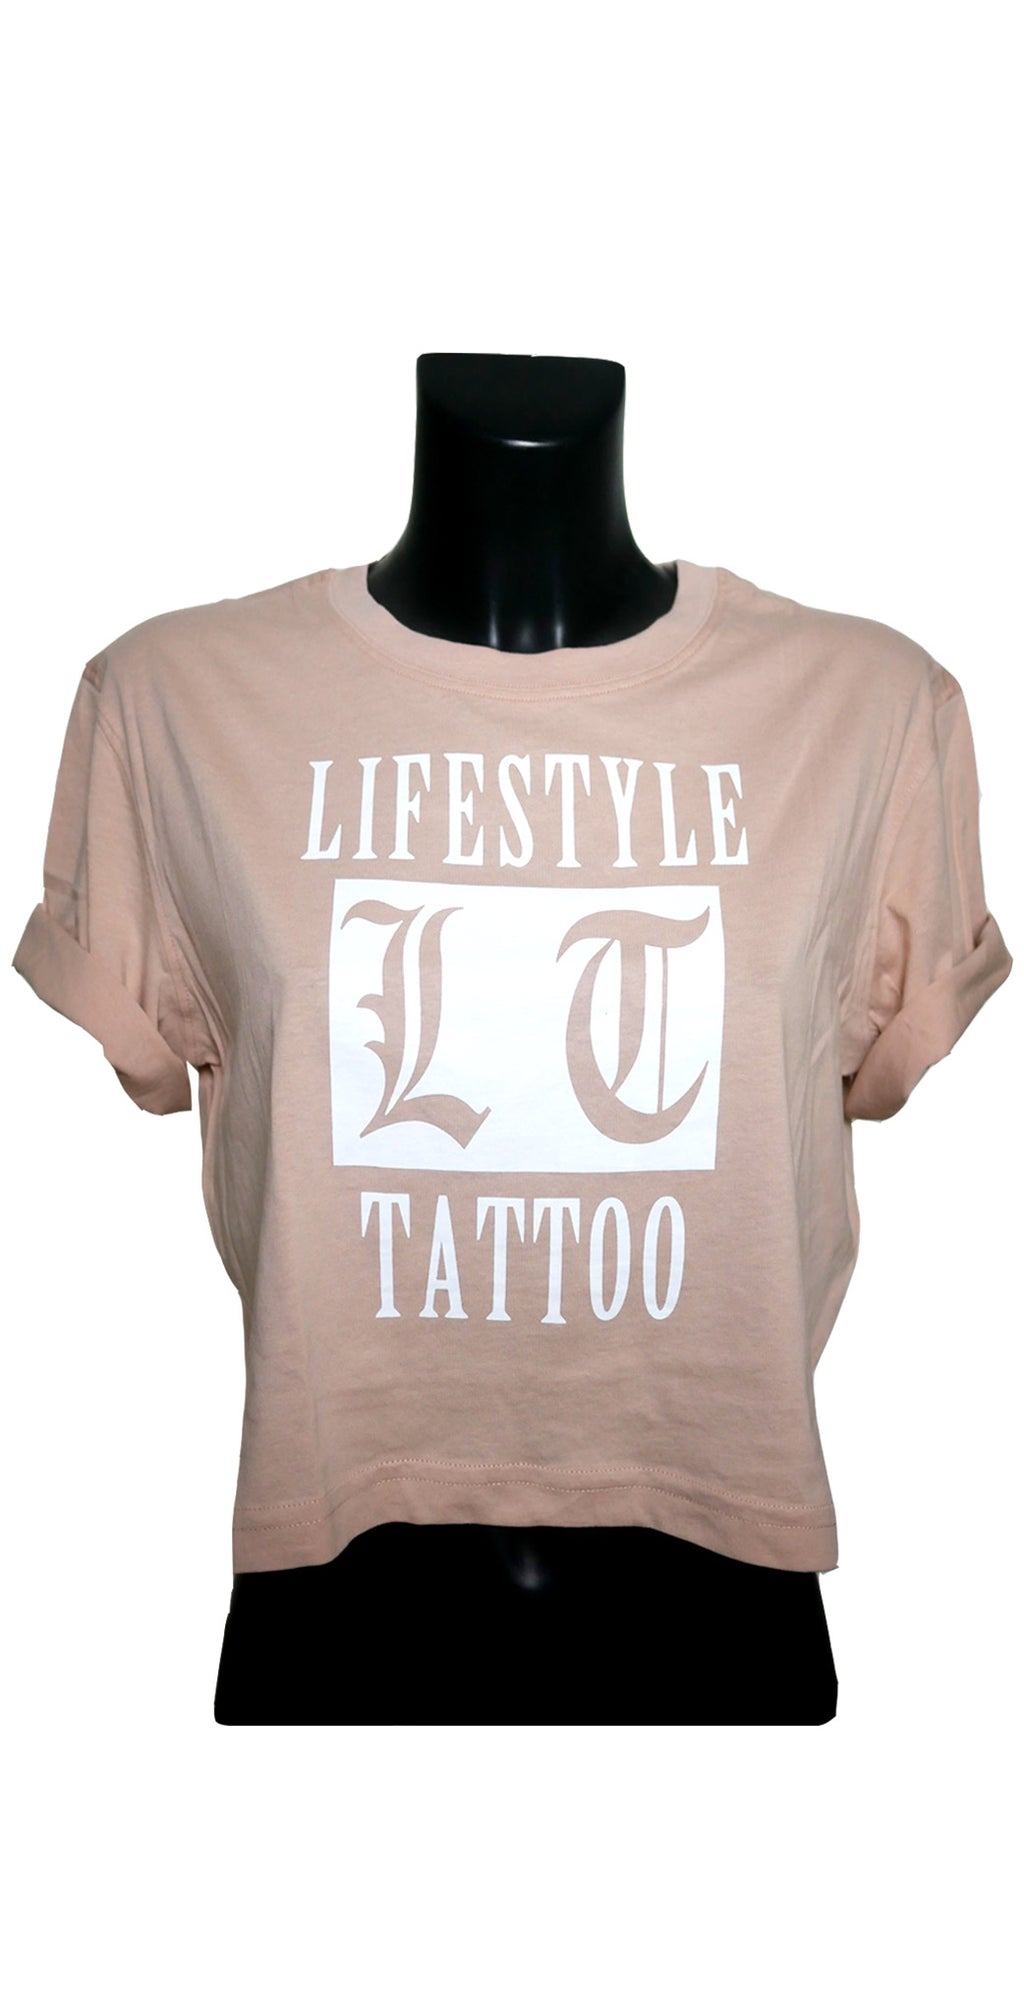 Lifestyle Tattoo LT Box Logo Dam Rosa/Vit